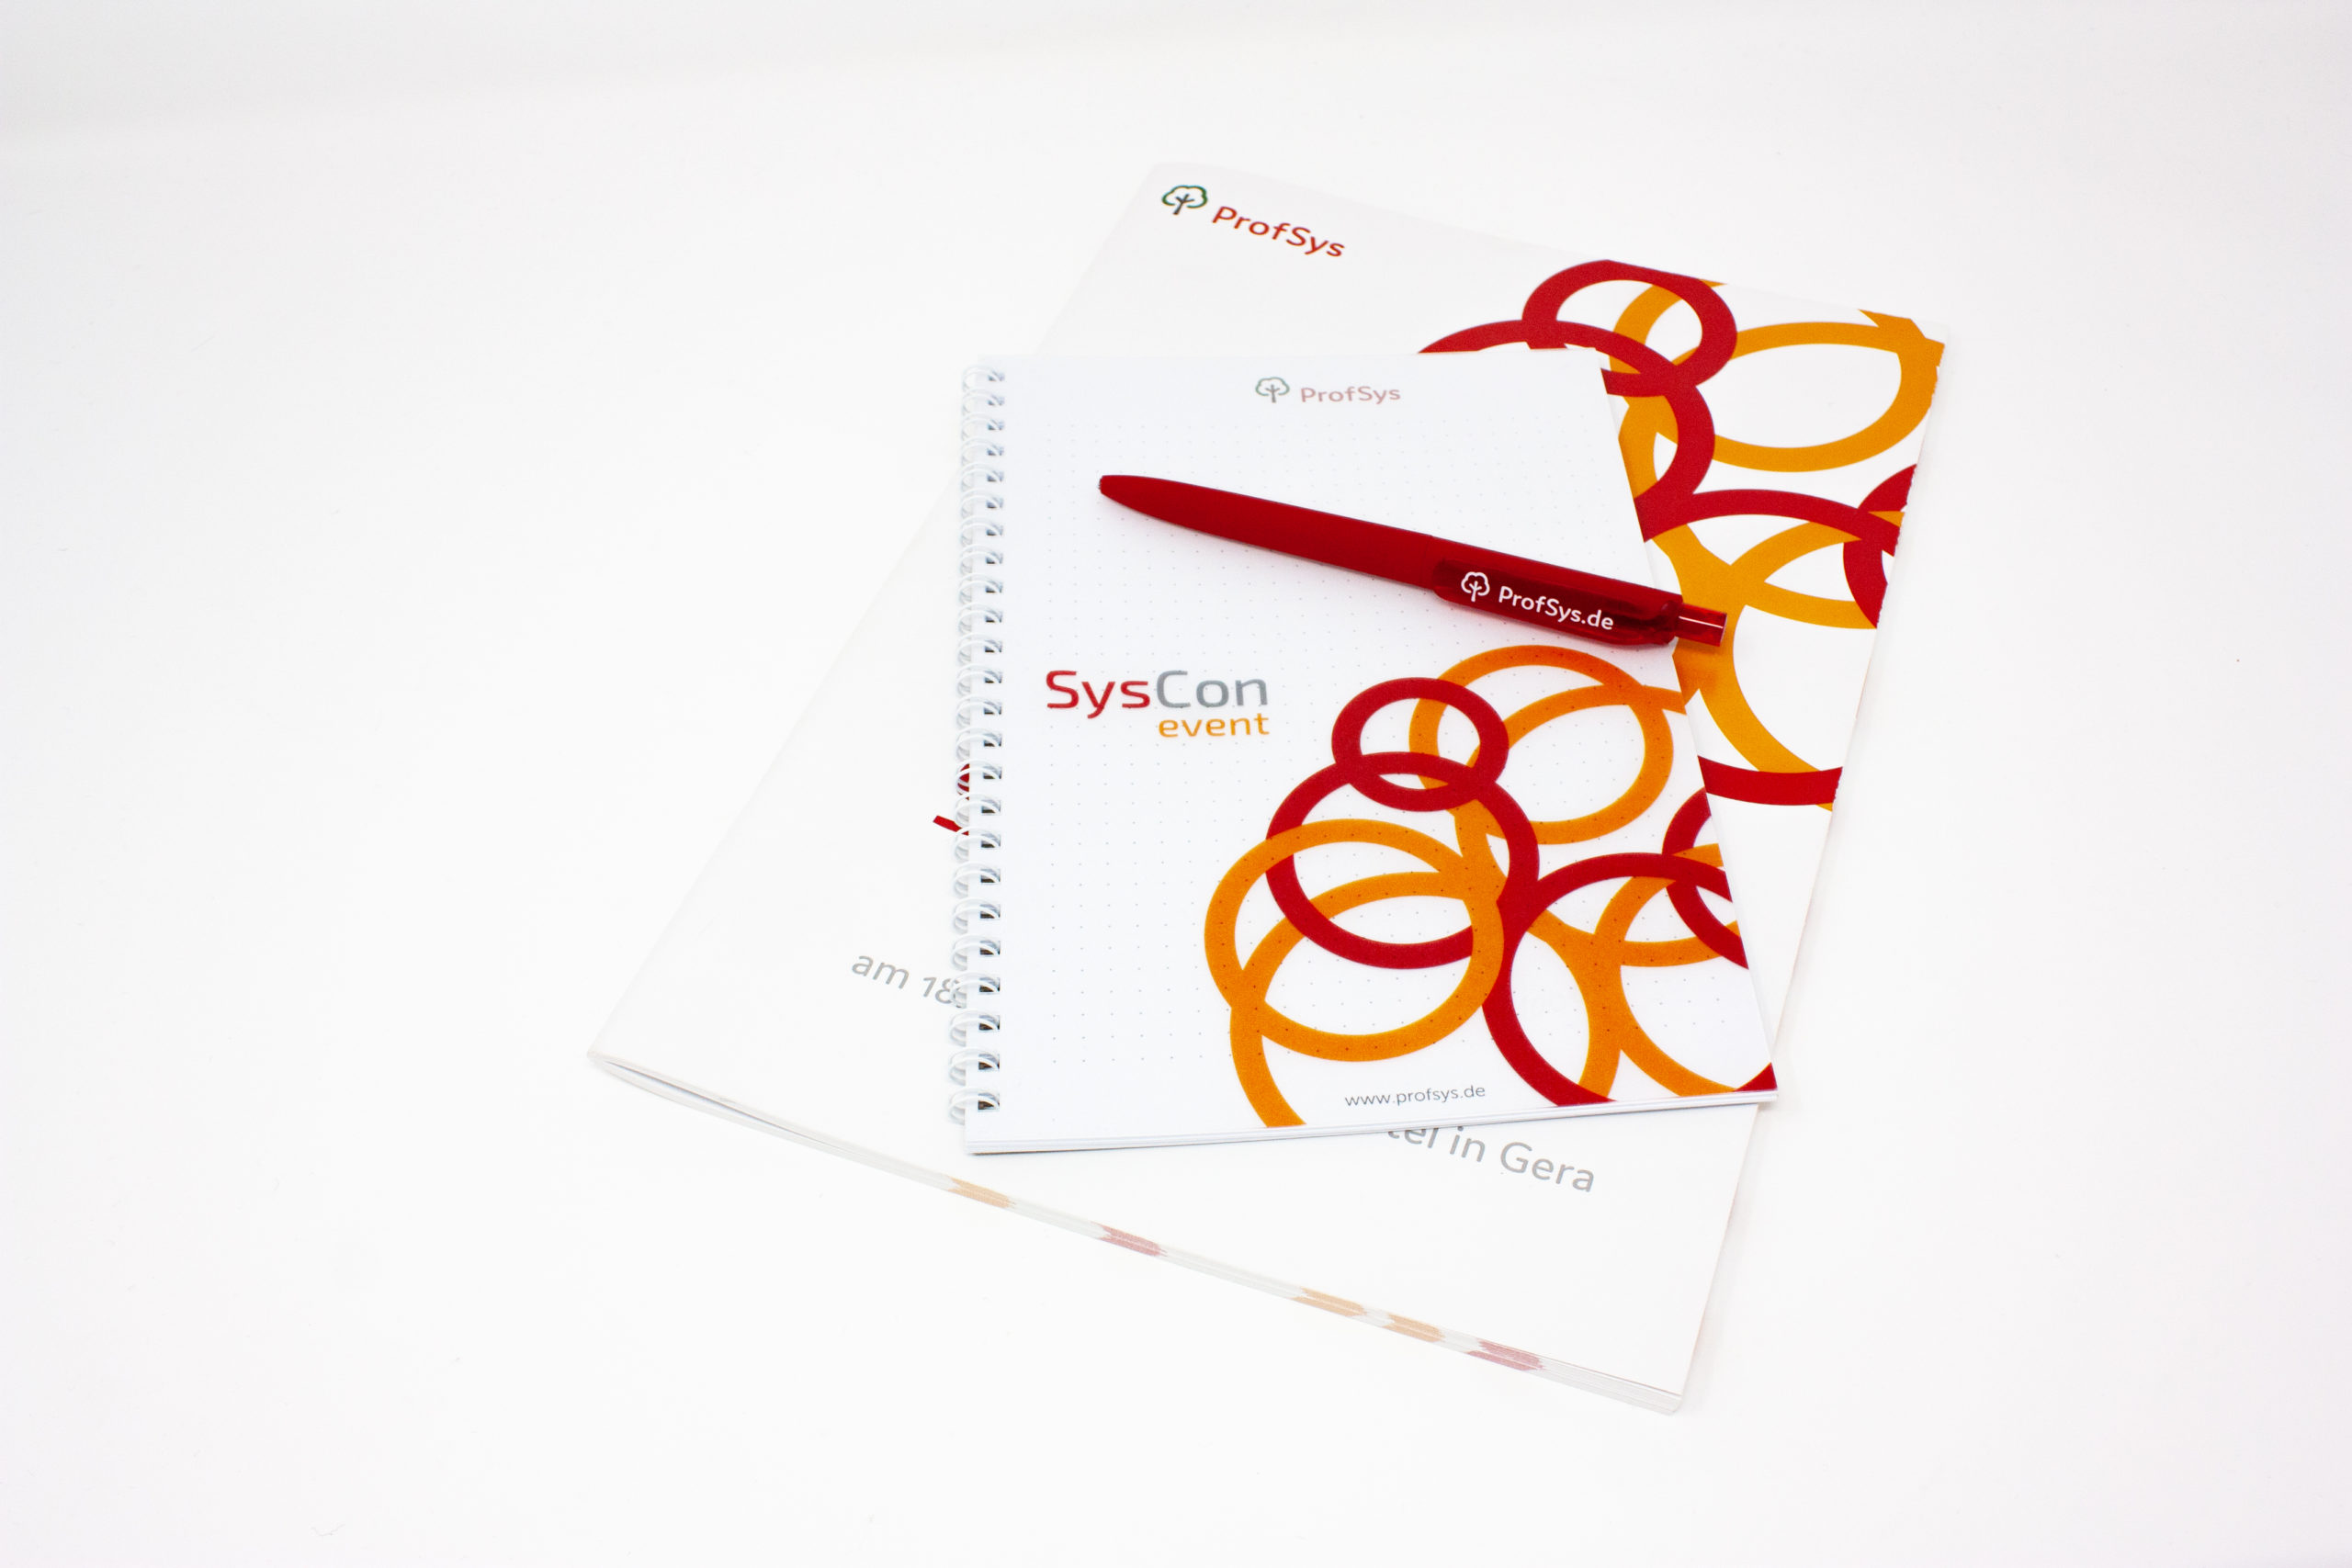 FORMLOS-ProfSys-SysCon2018-Corporate-Design-Print-3